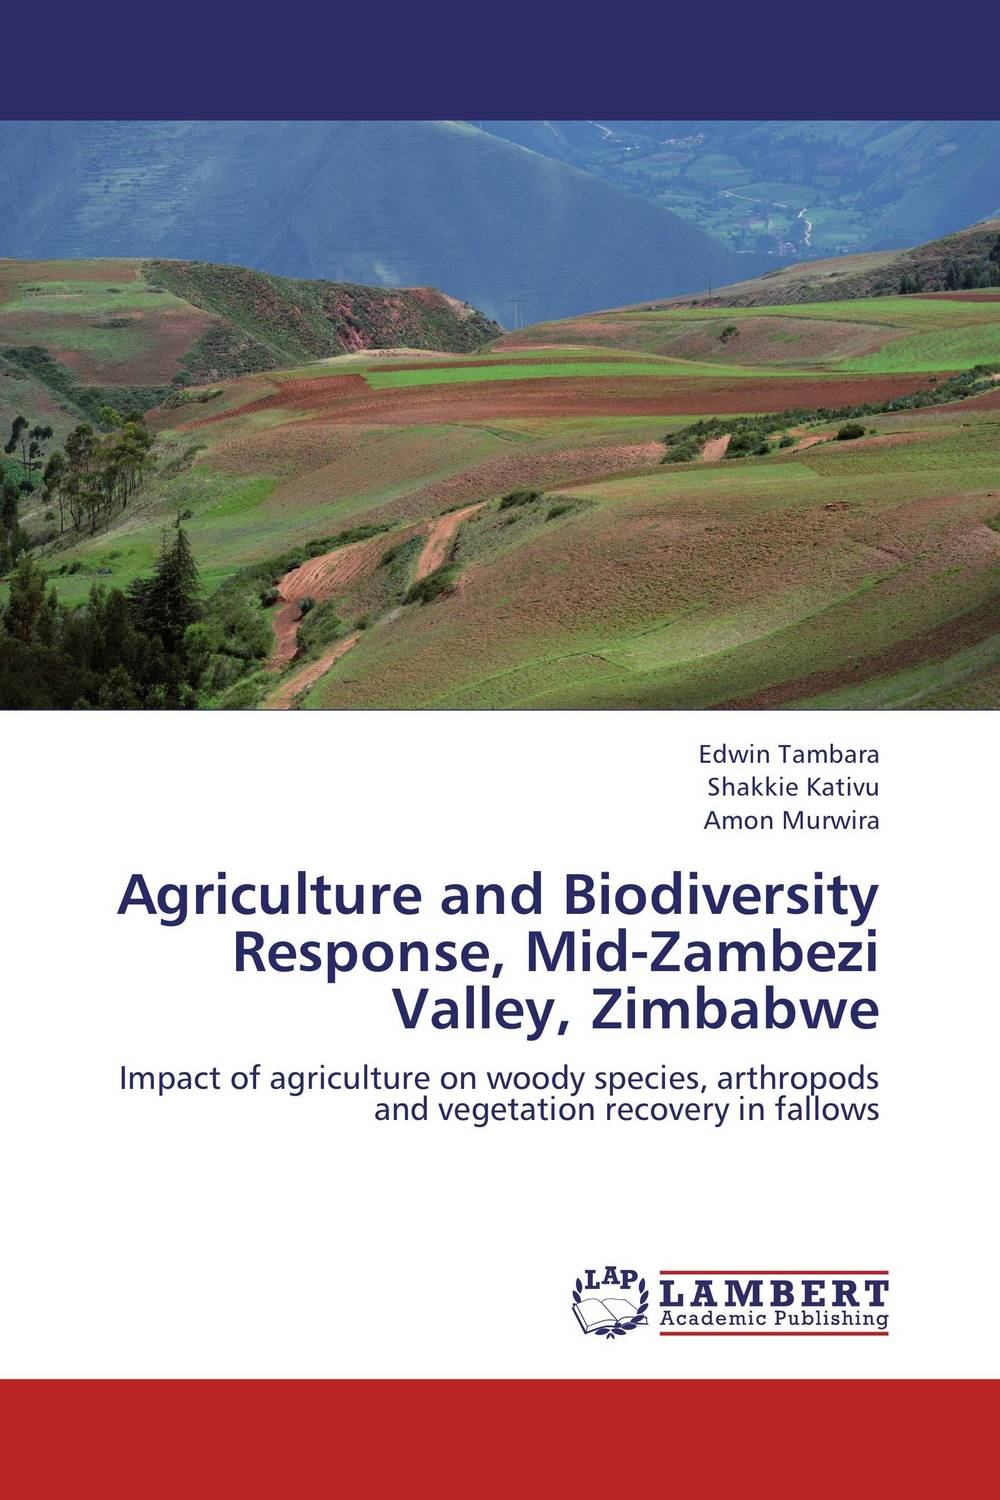 Agriculture and Biodiversity Response, Mid-Zambezi Valley, Zimbabwe pastoralism and agriculture pennar basin india